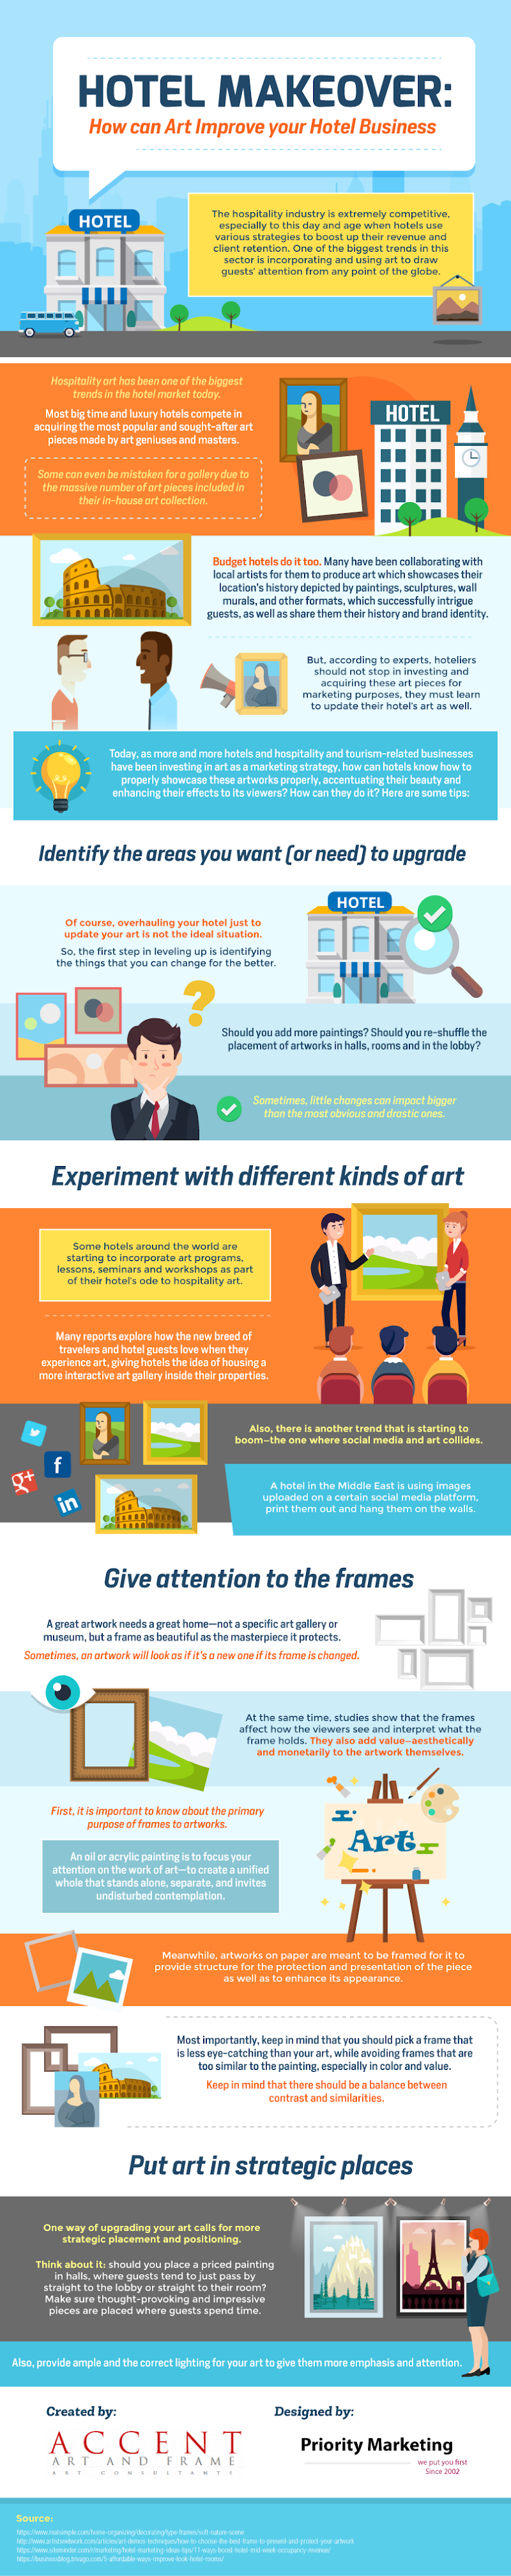 Hotel Makeover: How can Art Improve your Hotel Business #infographic #Business #Hotel Business #Art #Art Improve